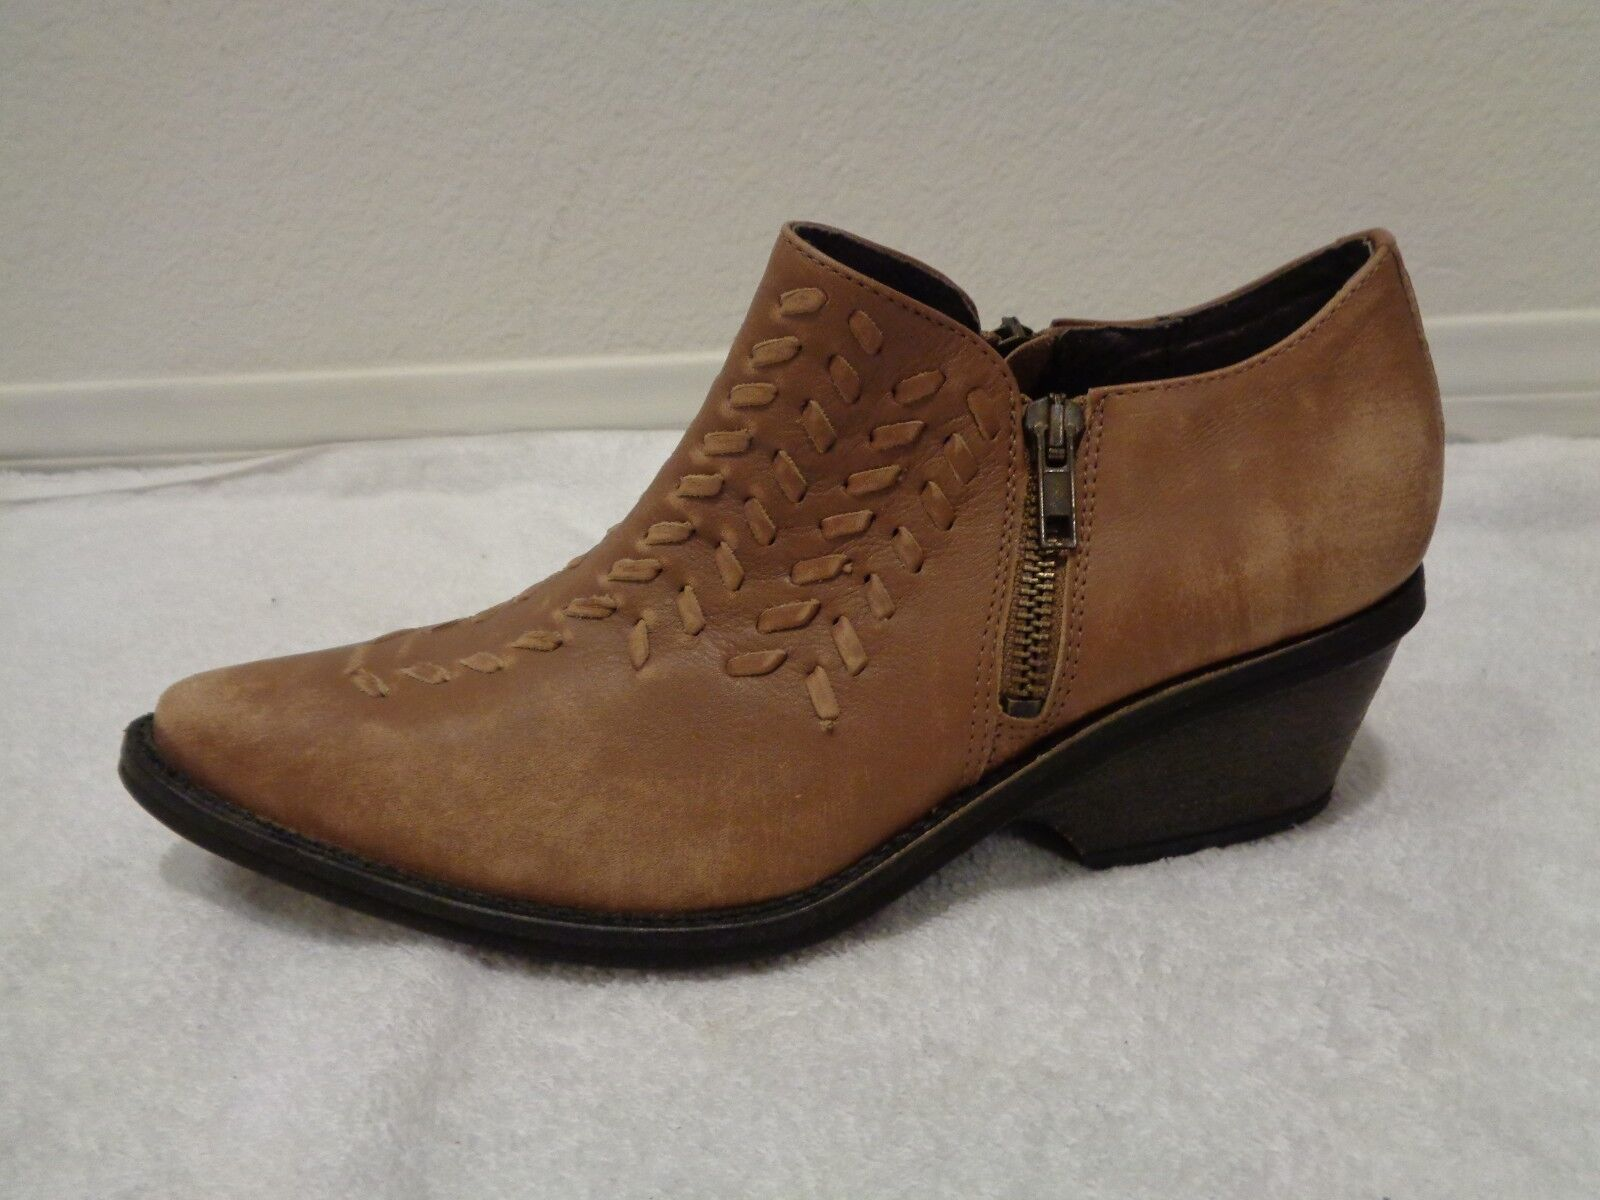 Free People Indio Dove Brown Boot Western Cowboy Woven Leather SZ 37/7